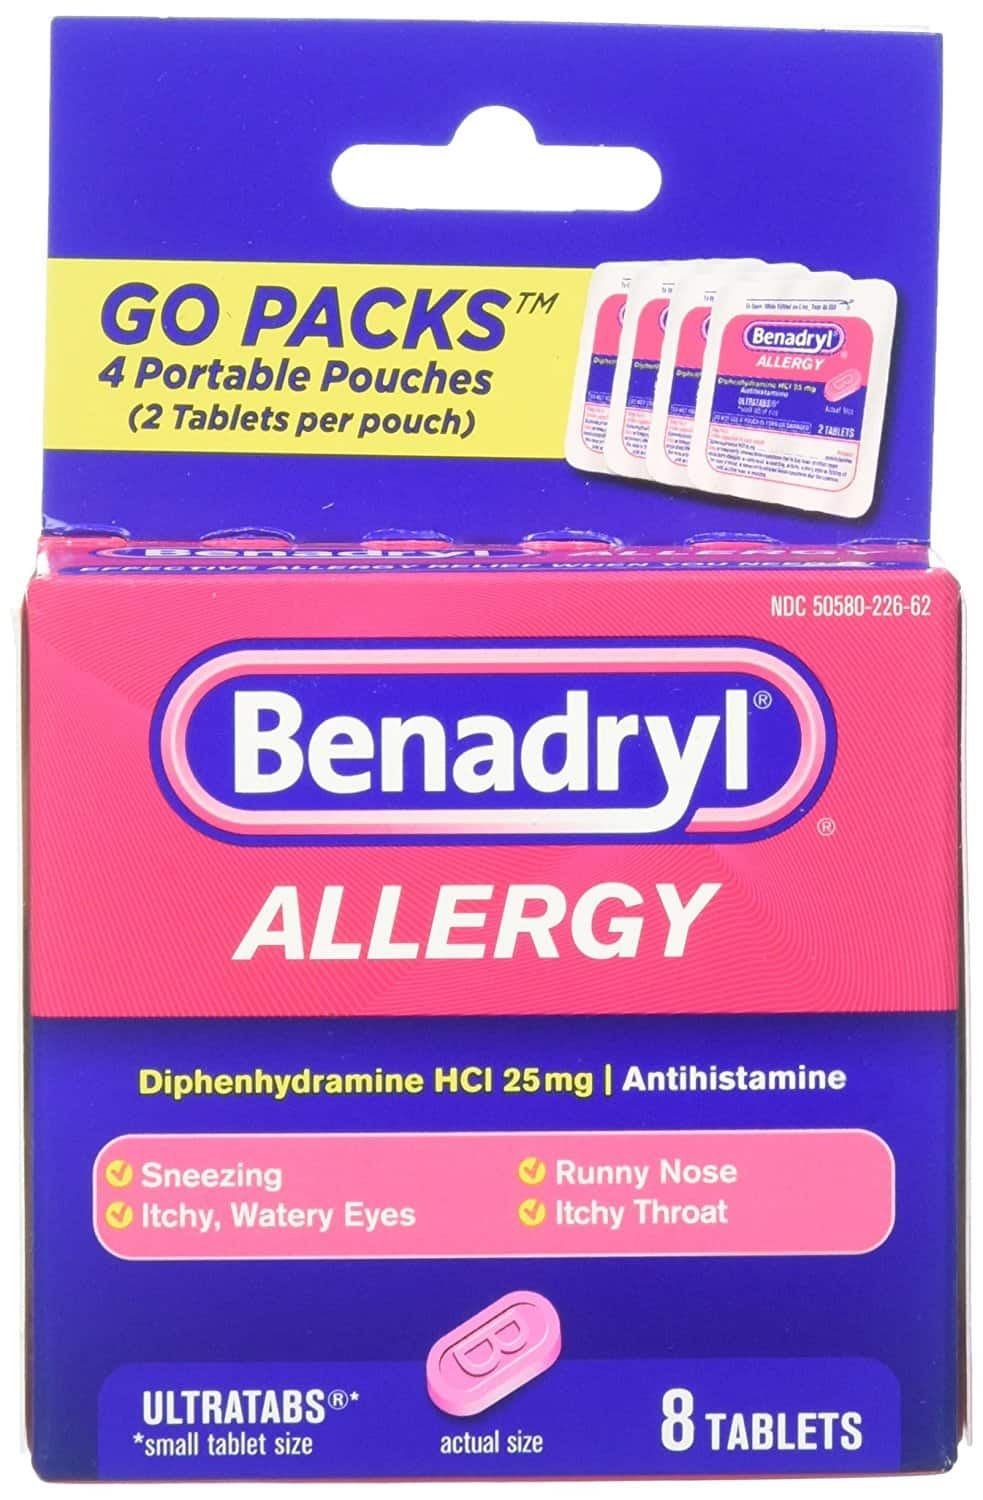 $2.00 with $2.00 credit Benadryl Allergy Ultratabs Tablets, Go Packs, 8 Count